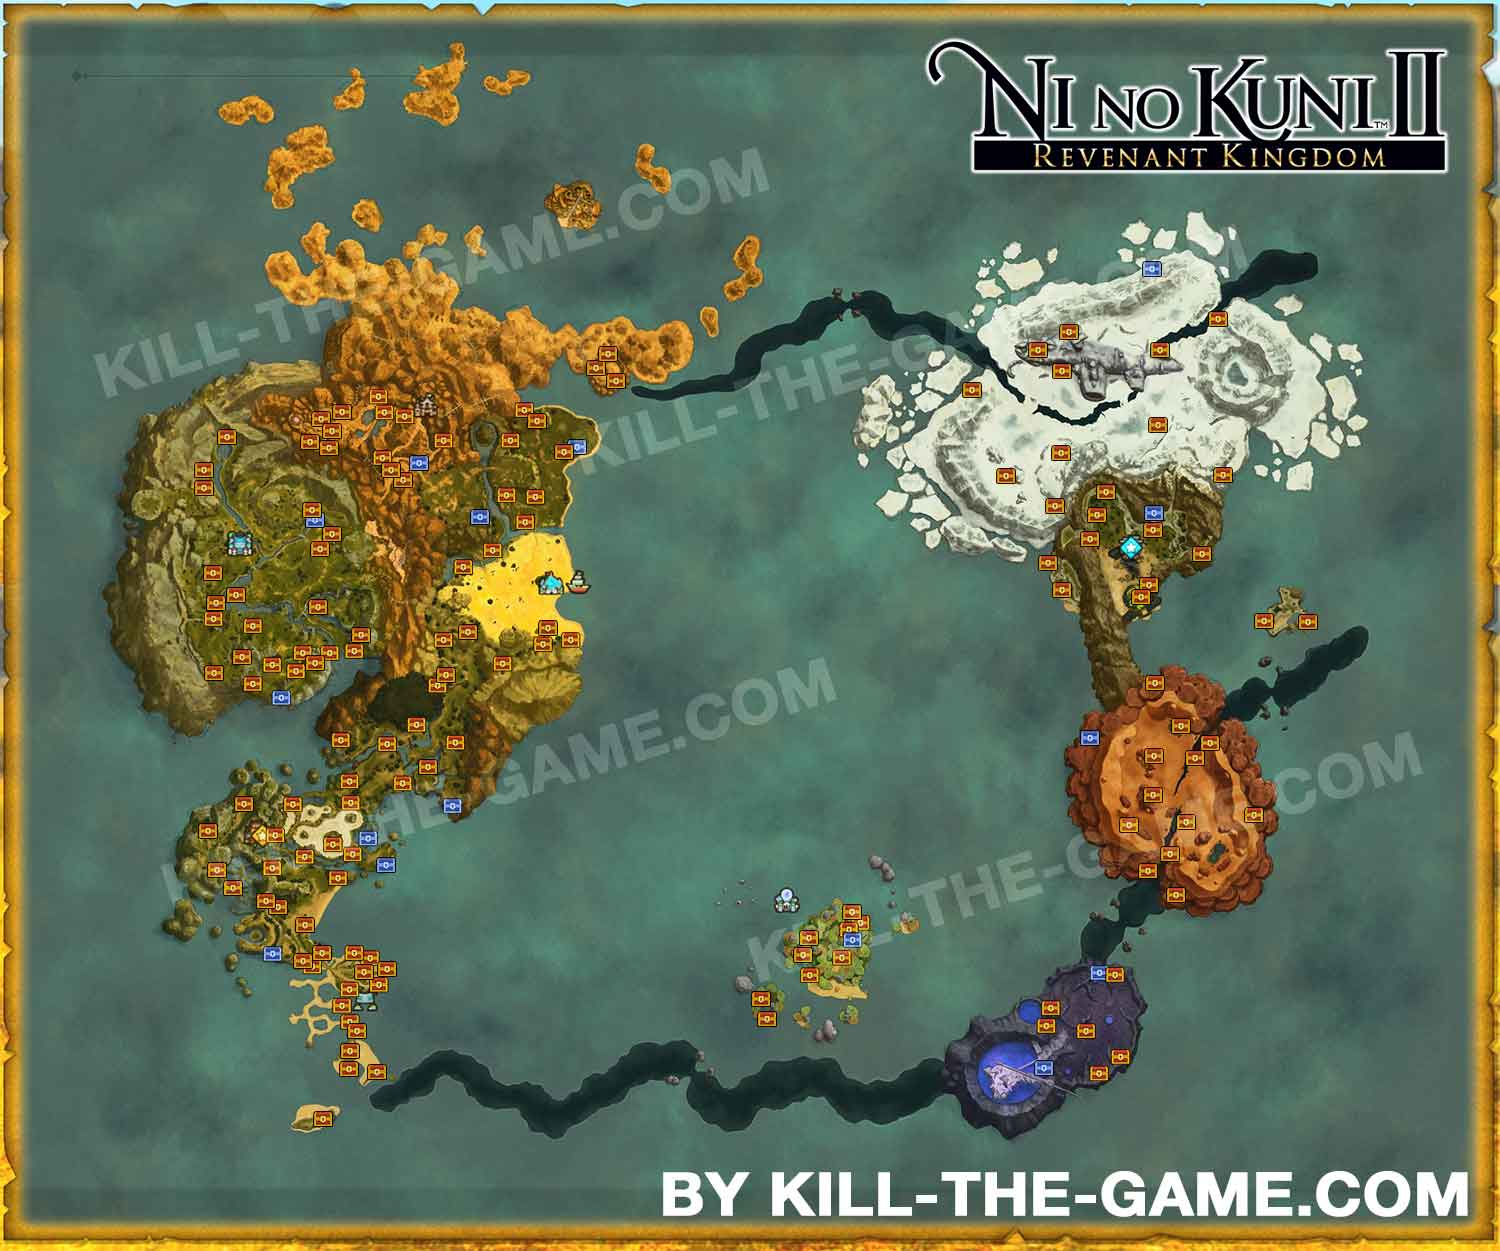 All location treasure chests world map ni no kuni 2 revenant kingdom gumiabroncs Images